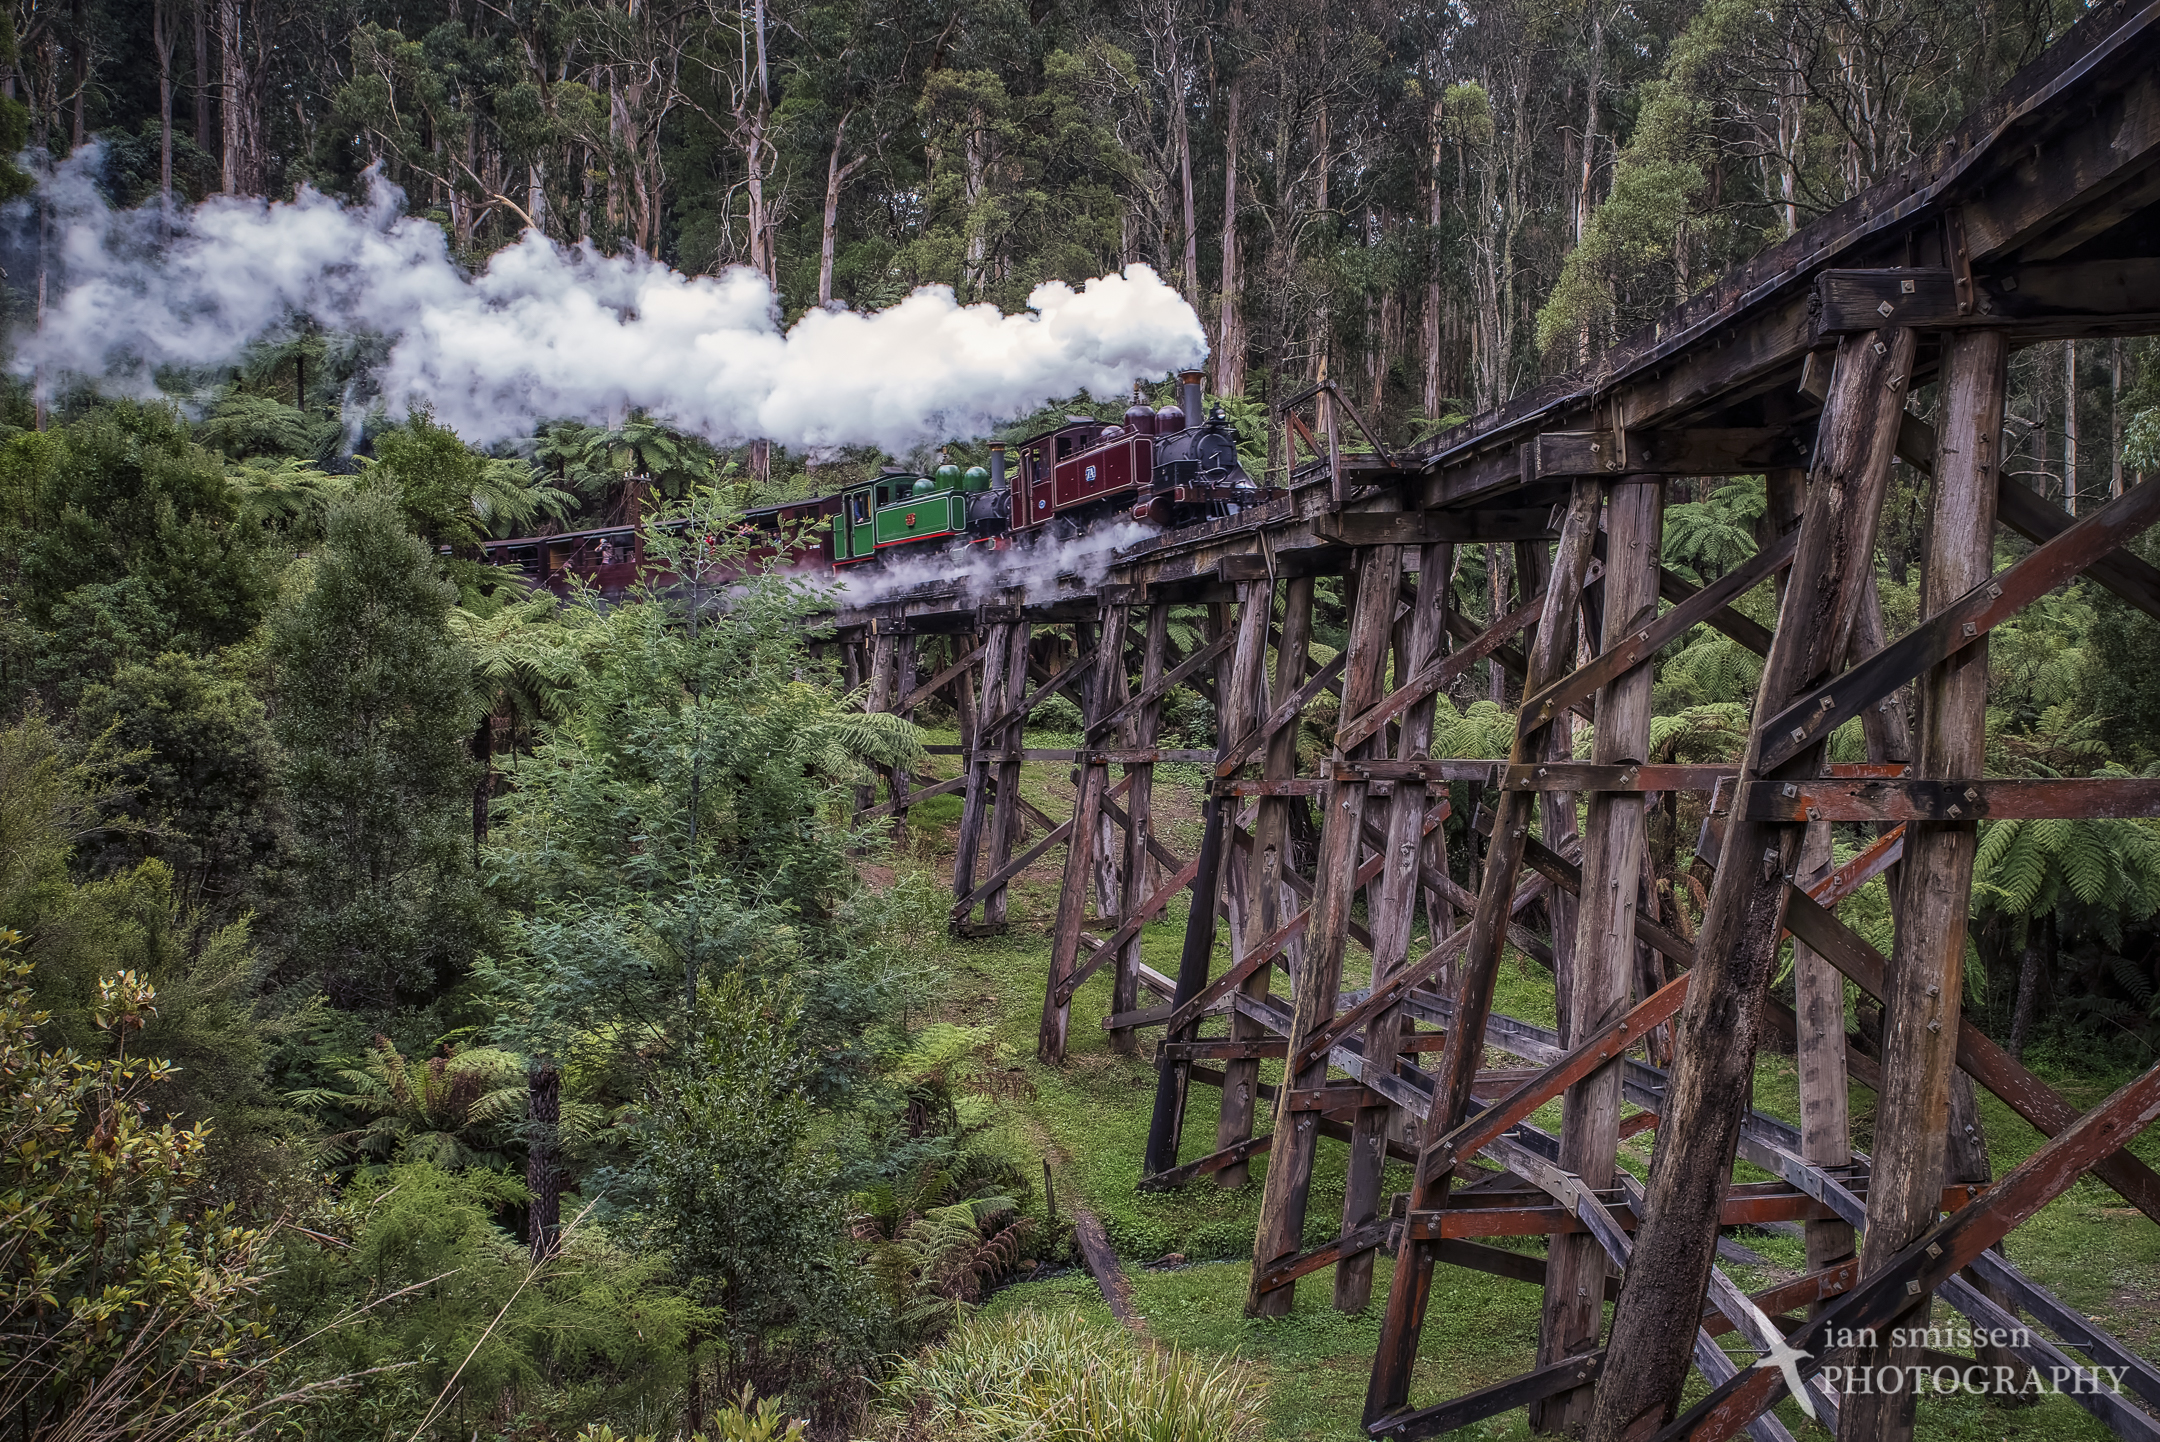 Puffing Billy on trestle bridge, Belgrave, Victoria 27mm, ISO 2500, 1/80 second @ f/8, Circular Polarising Filter